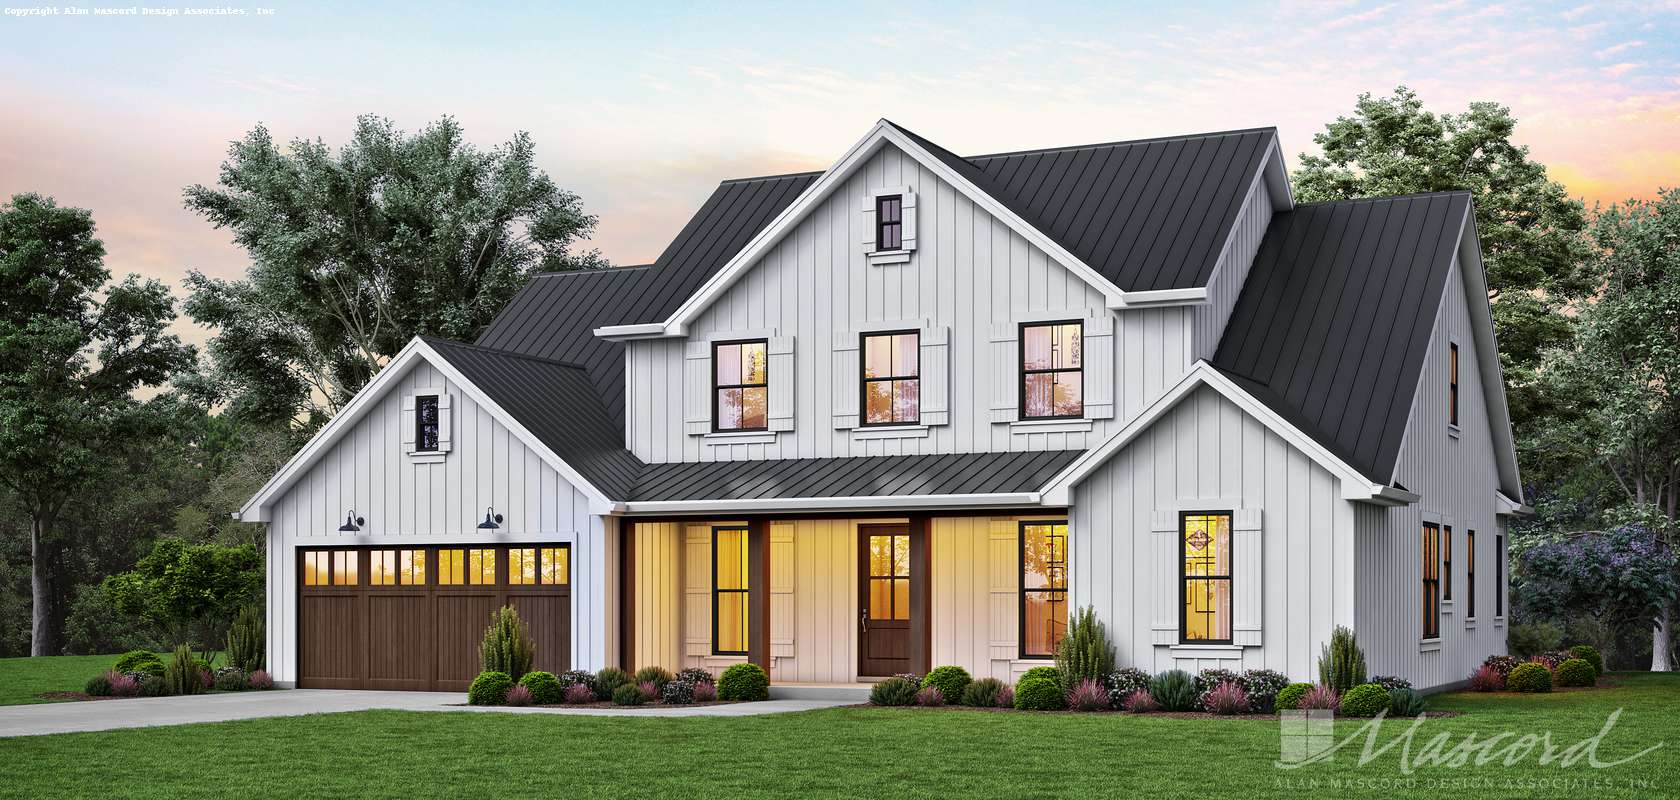 Free clipart simple 3 story house with large bedroom. Plans floor custom home